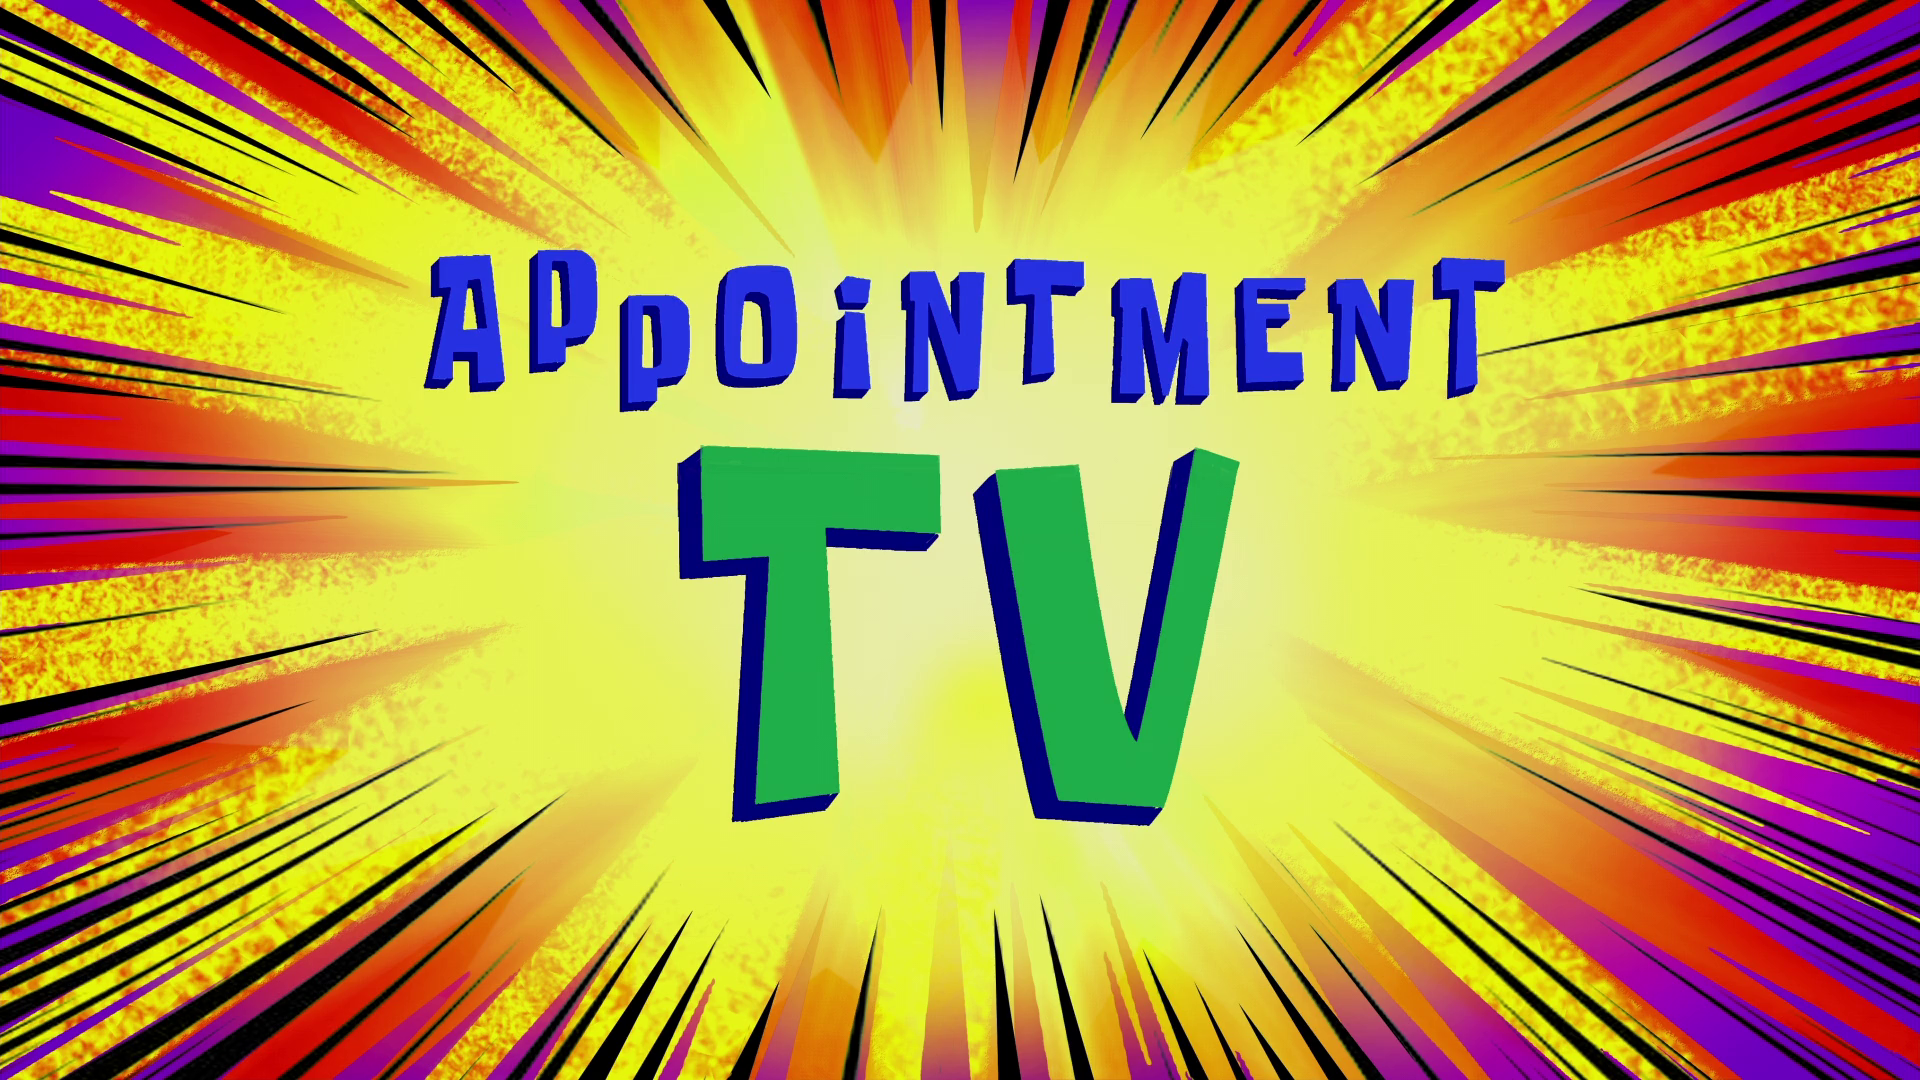 Appointment TV/gallery